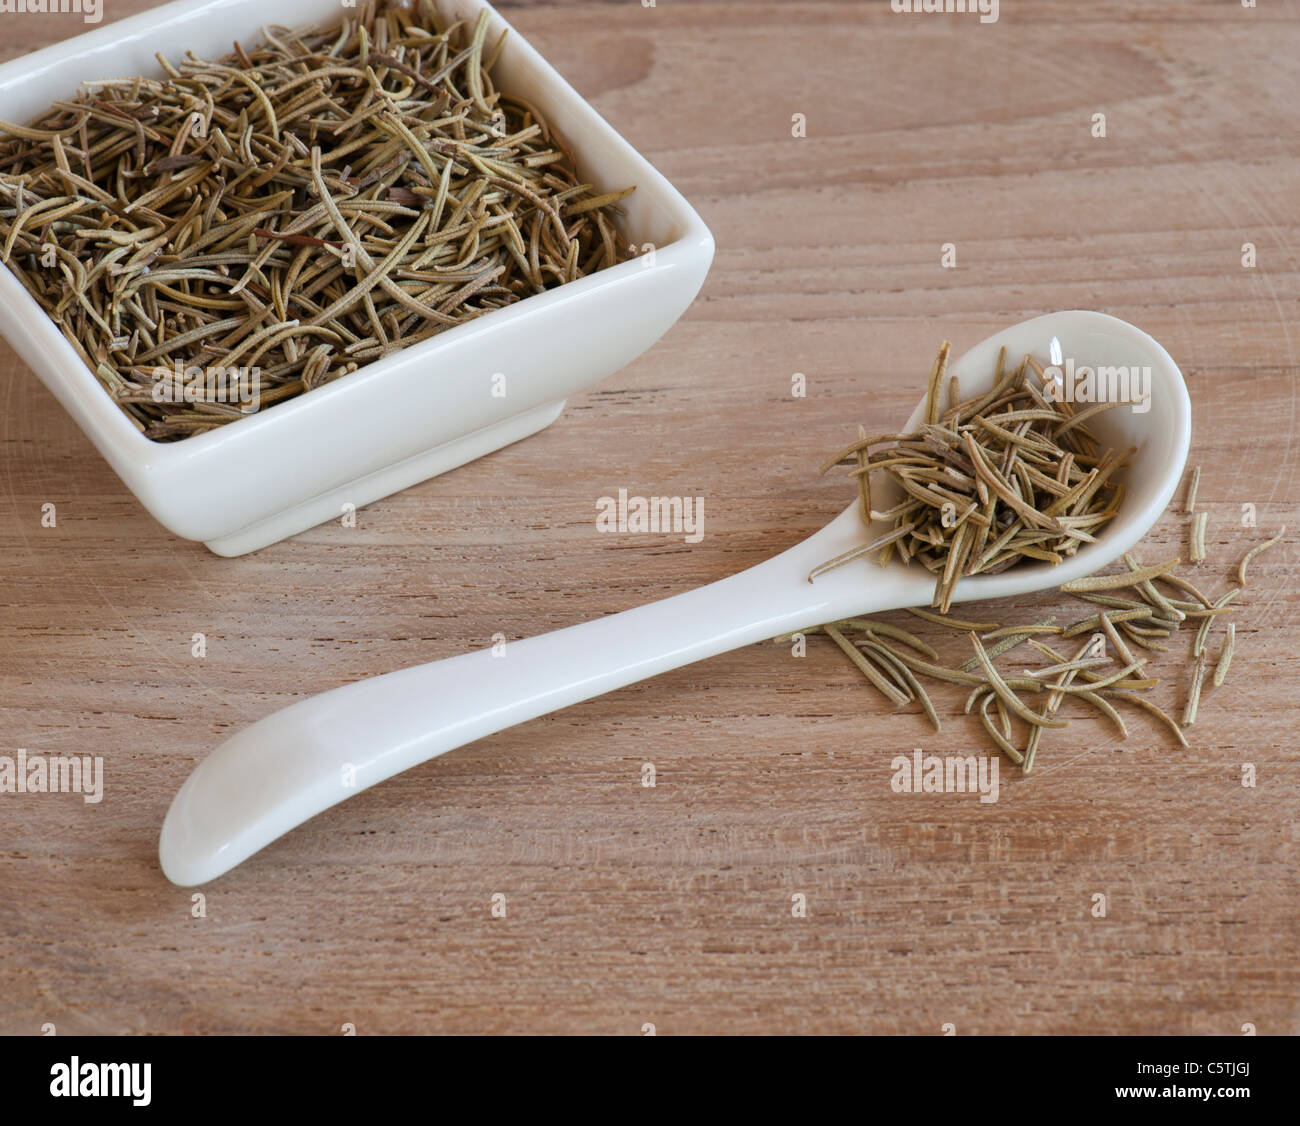 A Spoon and Dishful Of Dried Aromatic Rosemary Leaves, Up On A Wooden Work Surface - Stock Image